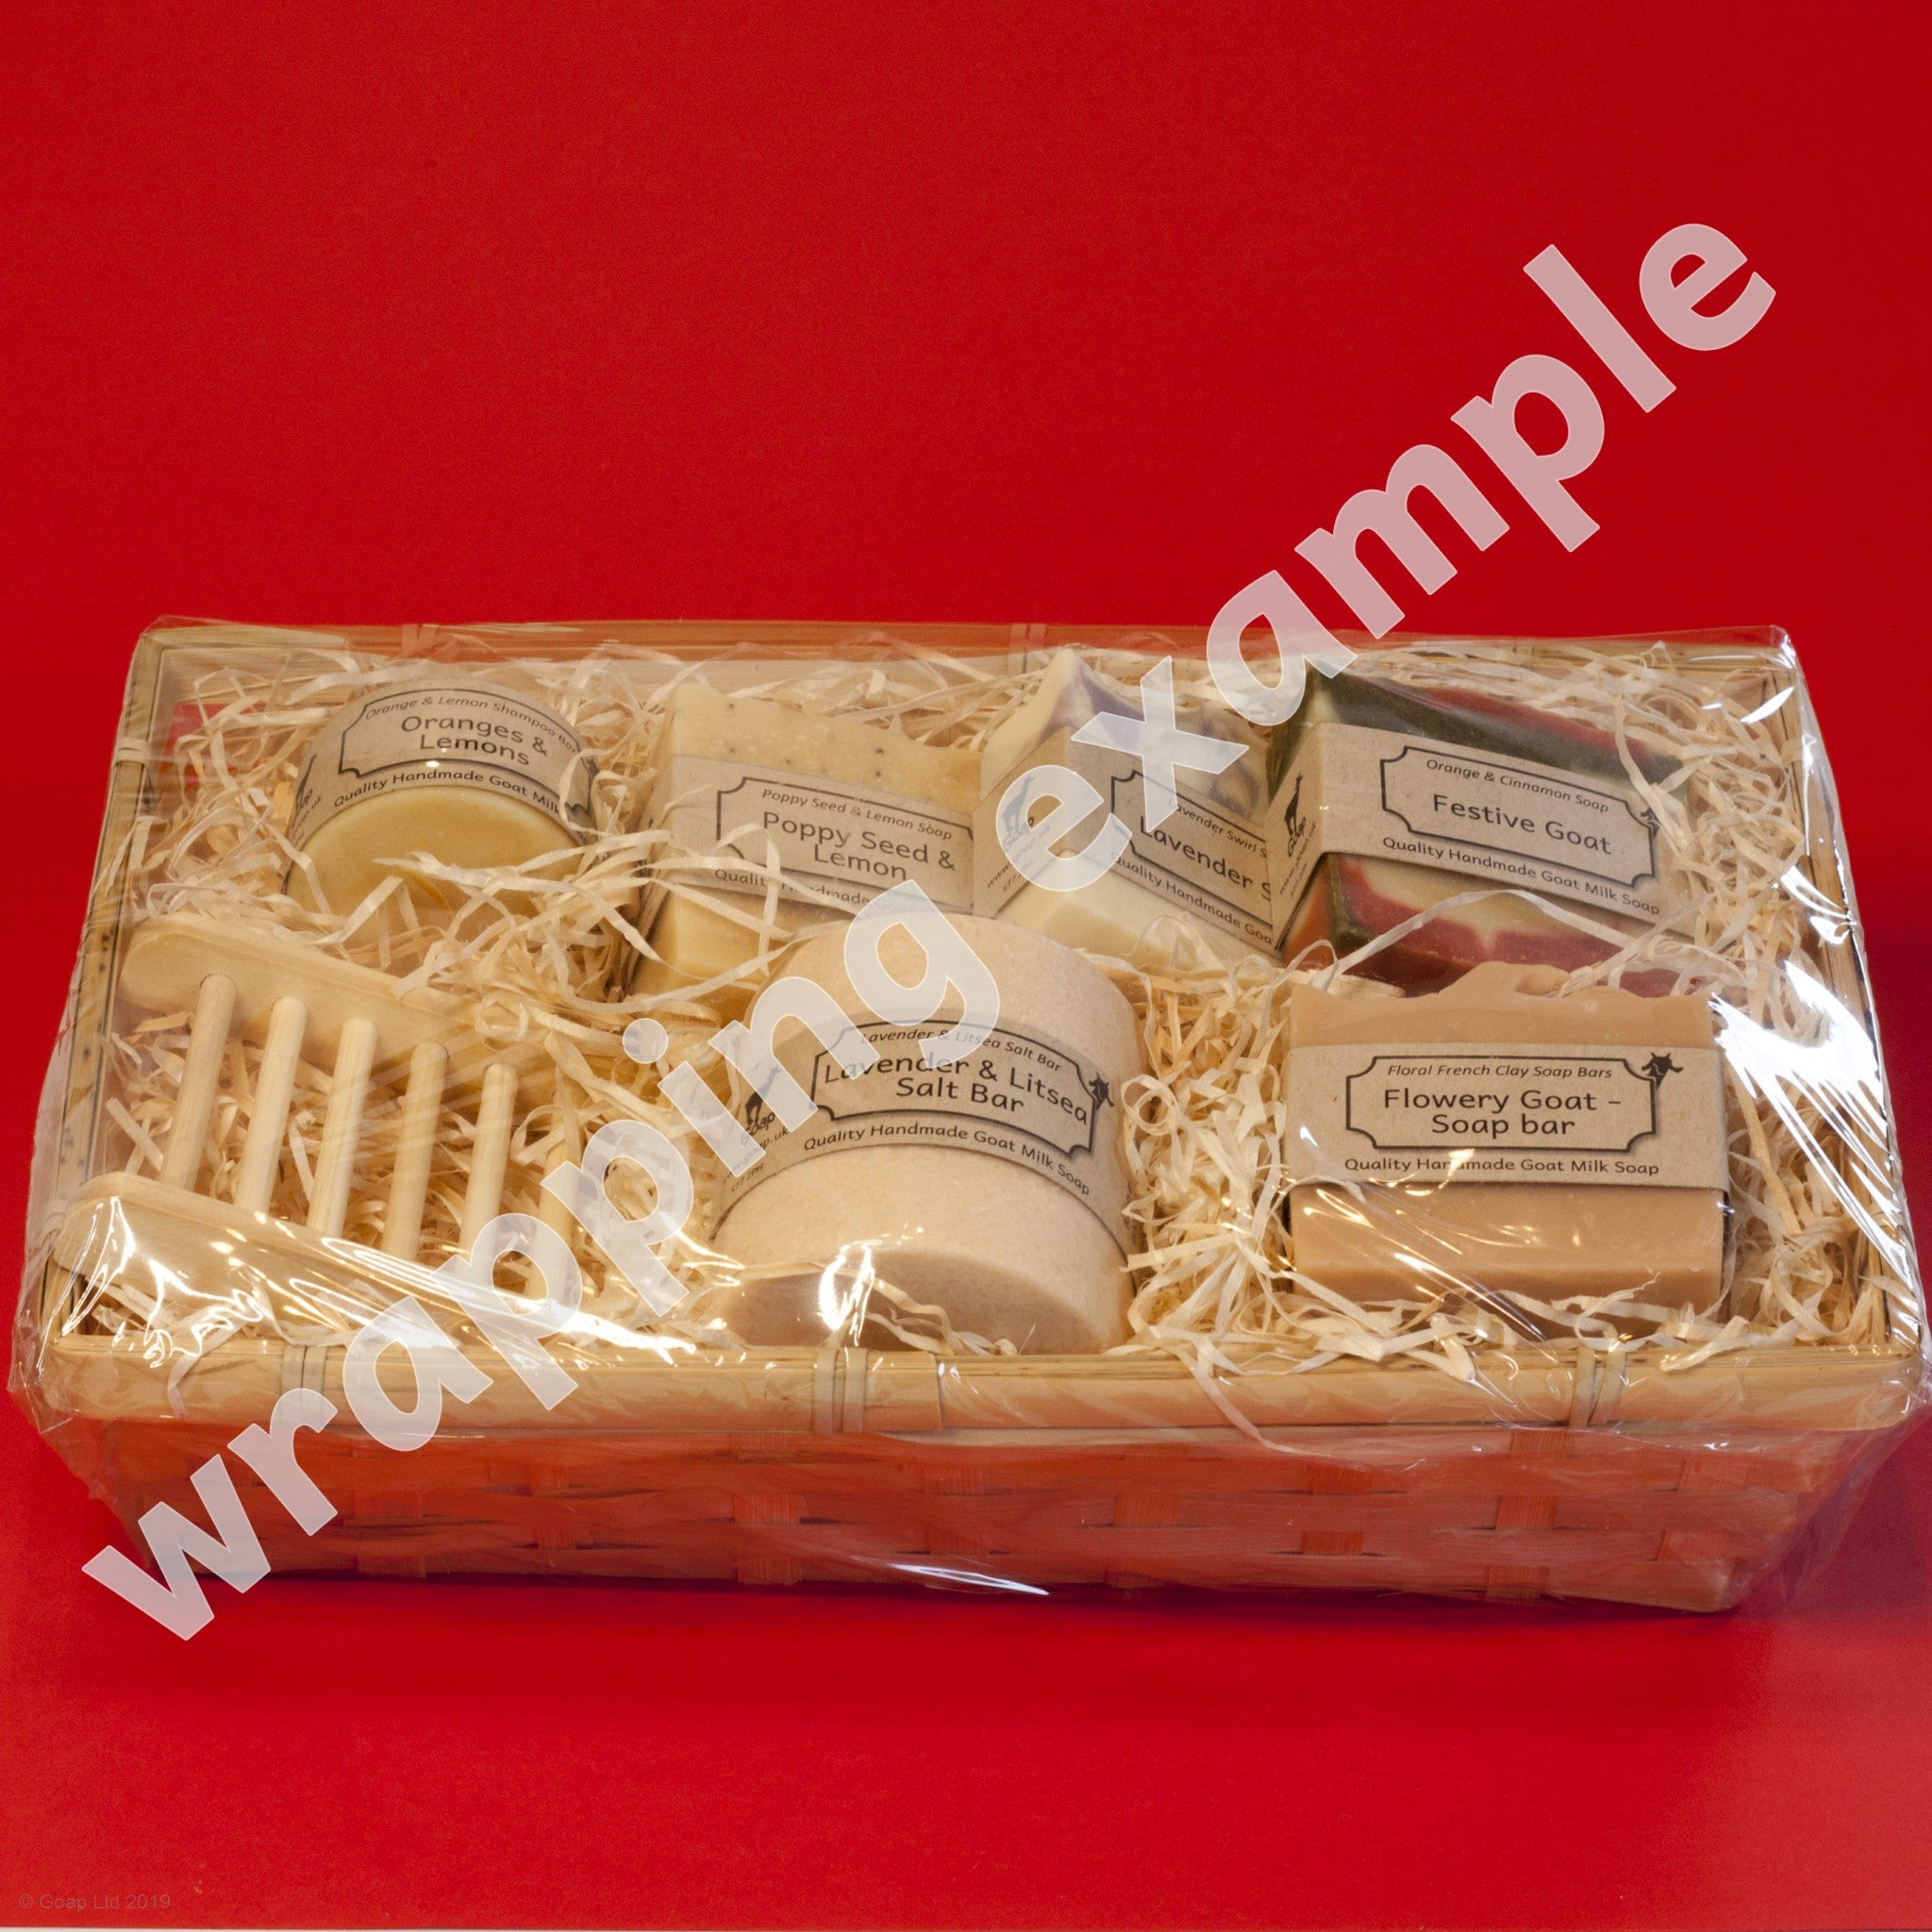 Wrapped Gift Set from Goap